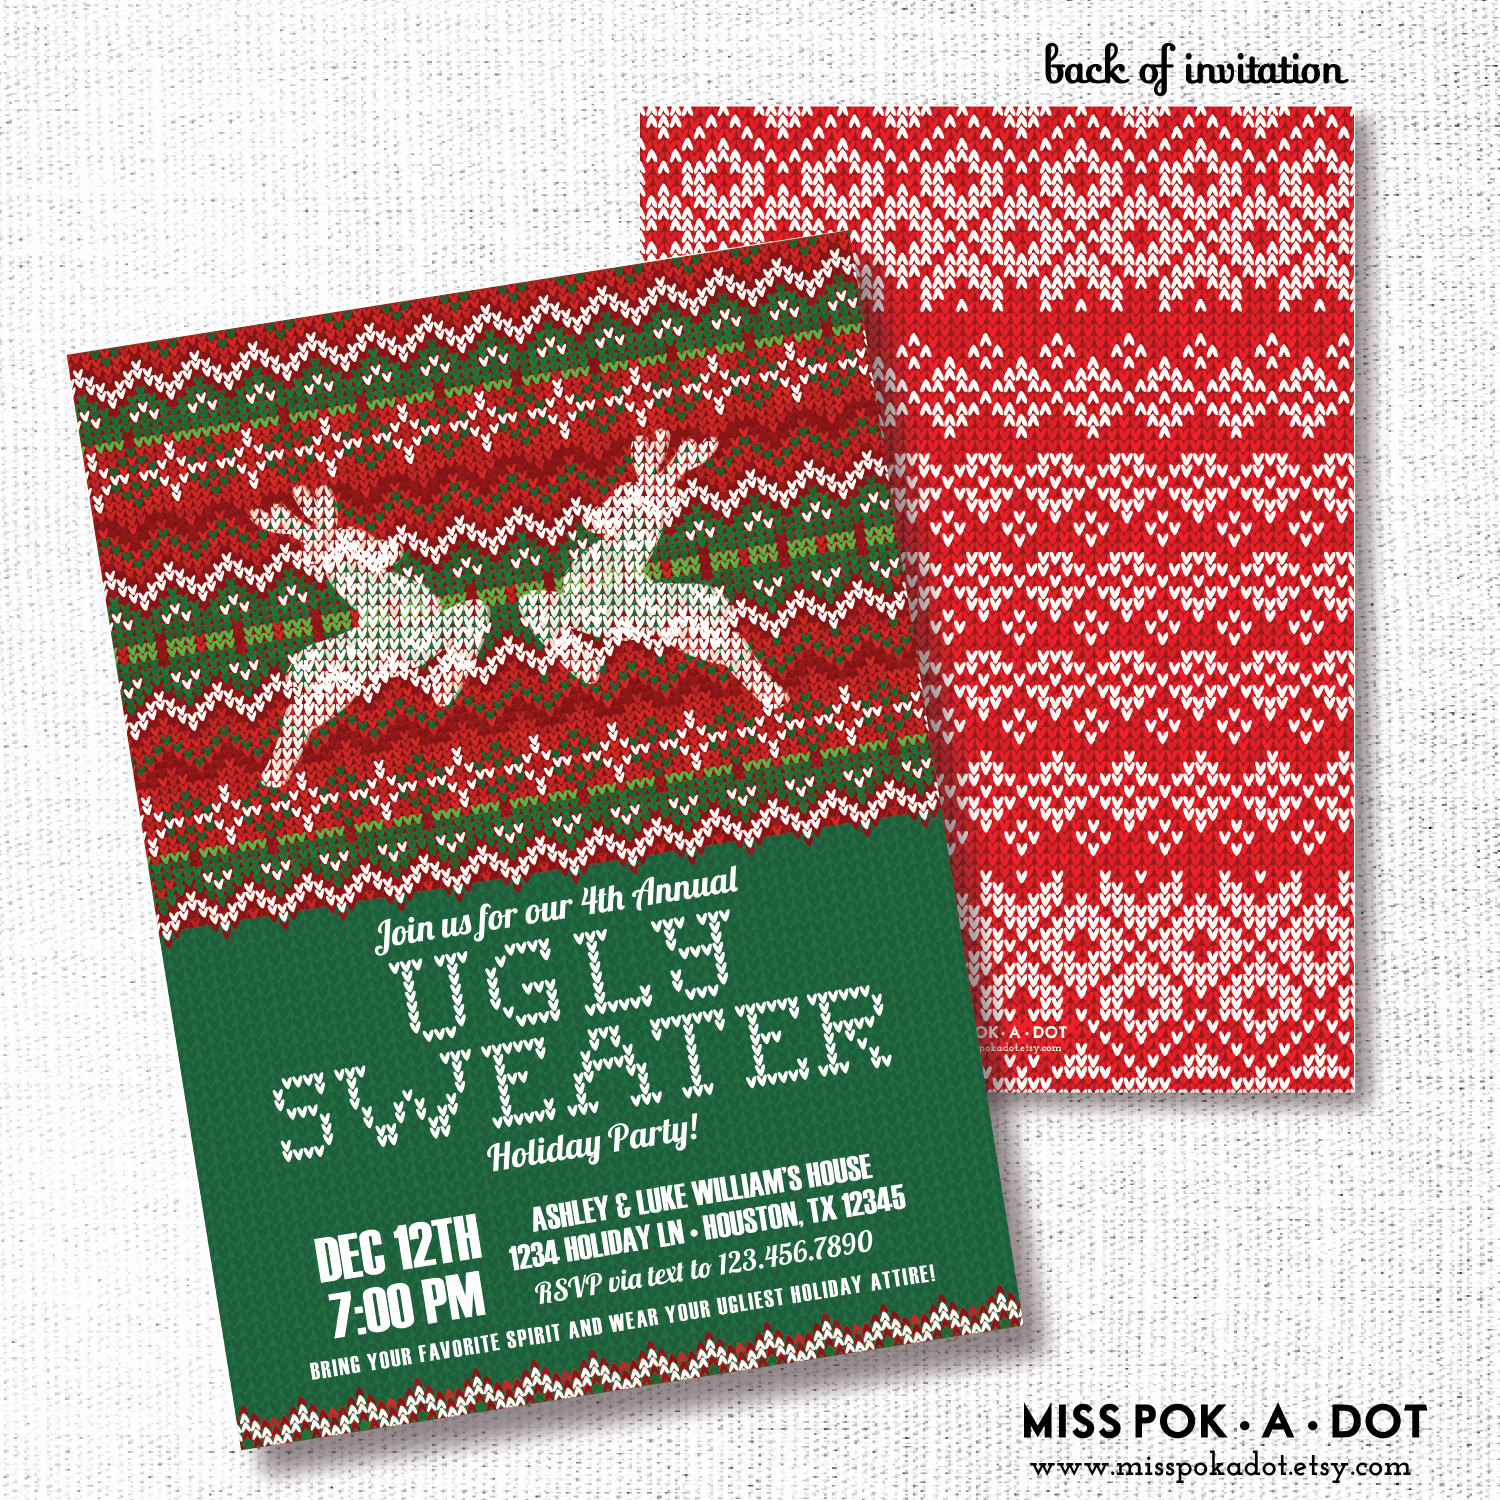 Ugly Christmas Sweater Invitation Lovely Ugly Sweater Holiday Party Invitation Printable Tacky